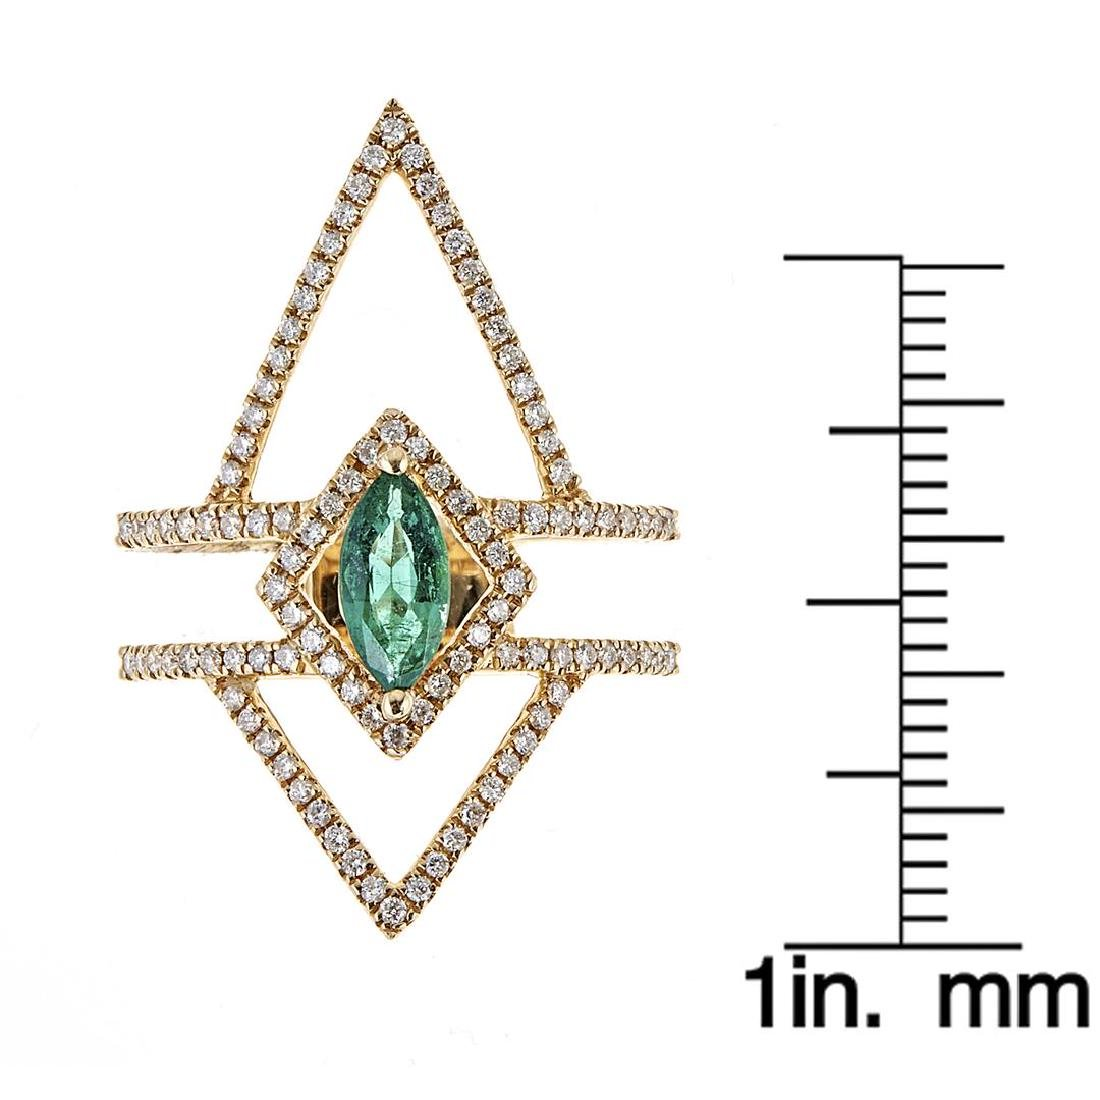 0.47 ctw Emerald and Diamond Ring - 18KT Yellow Gold - 3